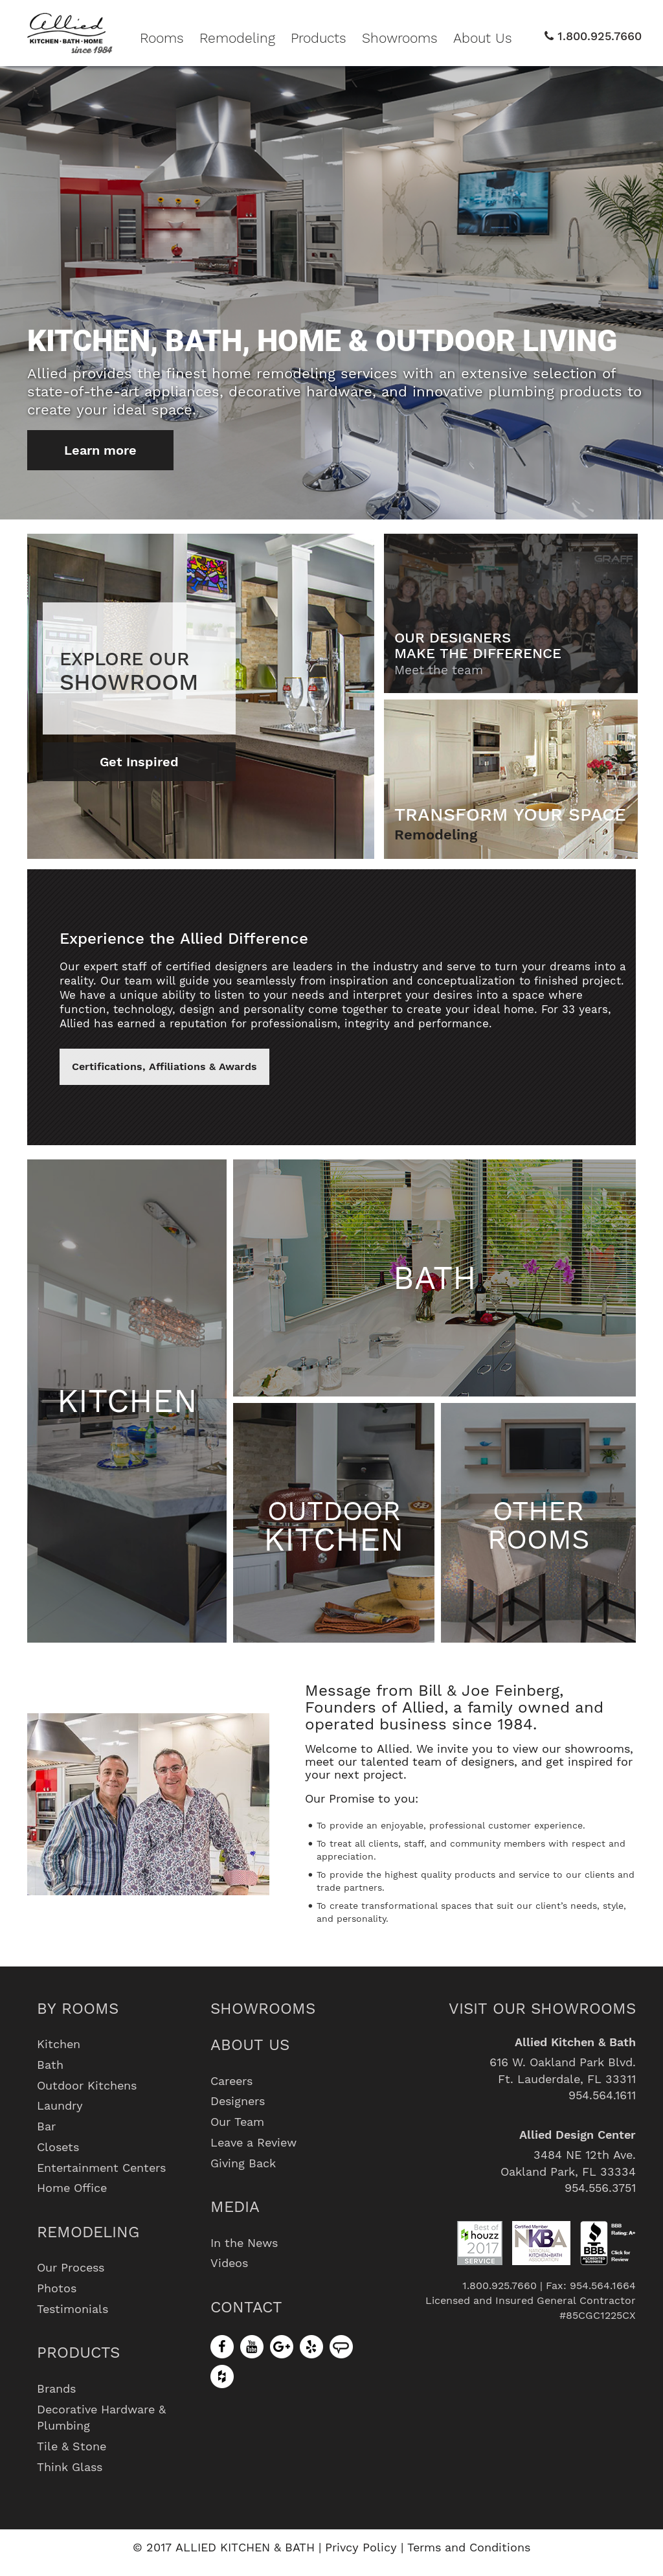 Allied Kitchen Bath S Competitors Revenue Number Of Employees Funding Acquisitions News Owler Company Profile